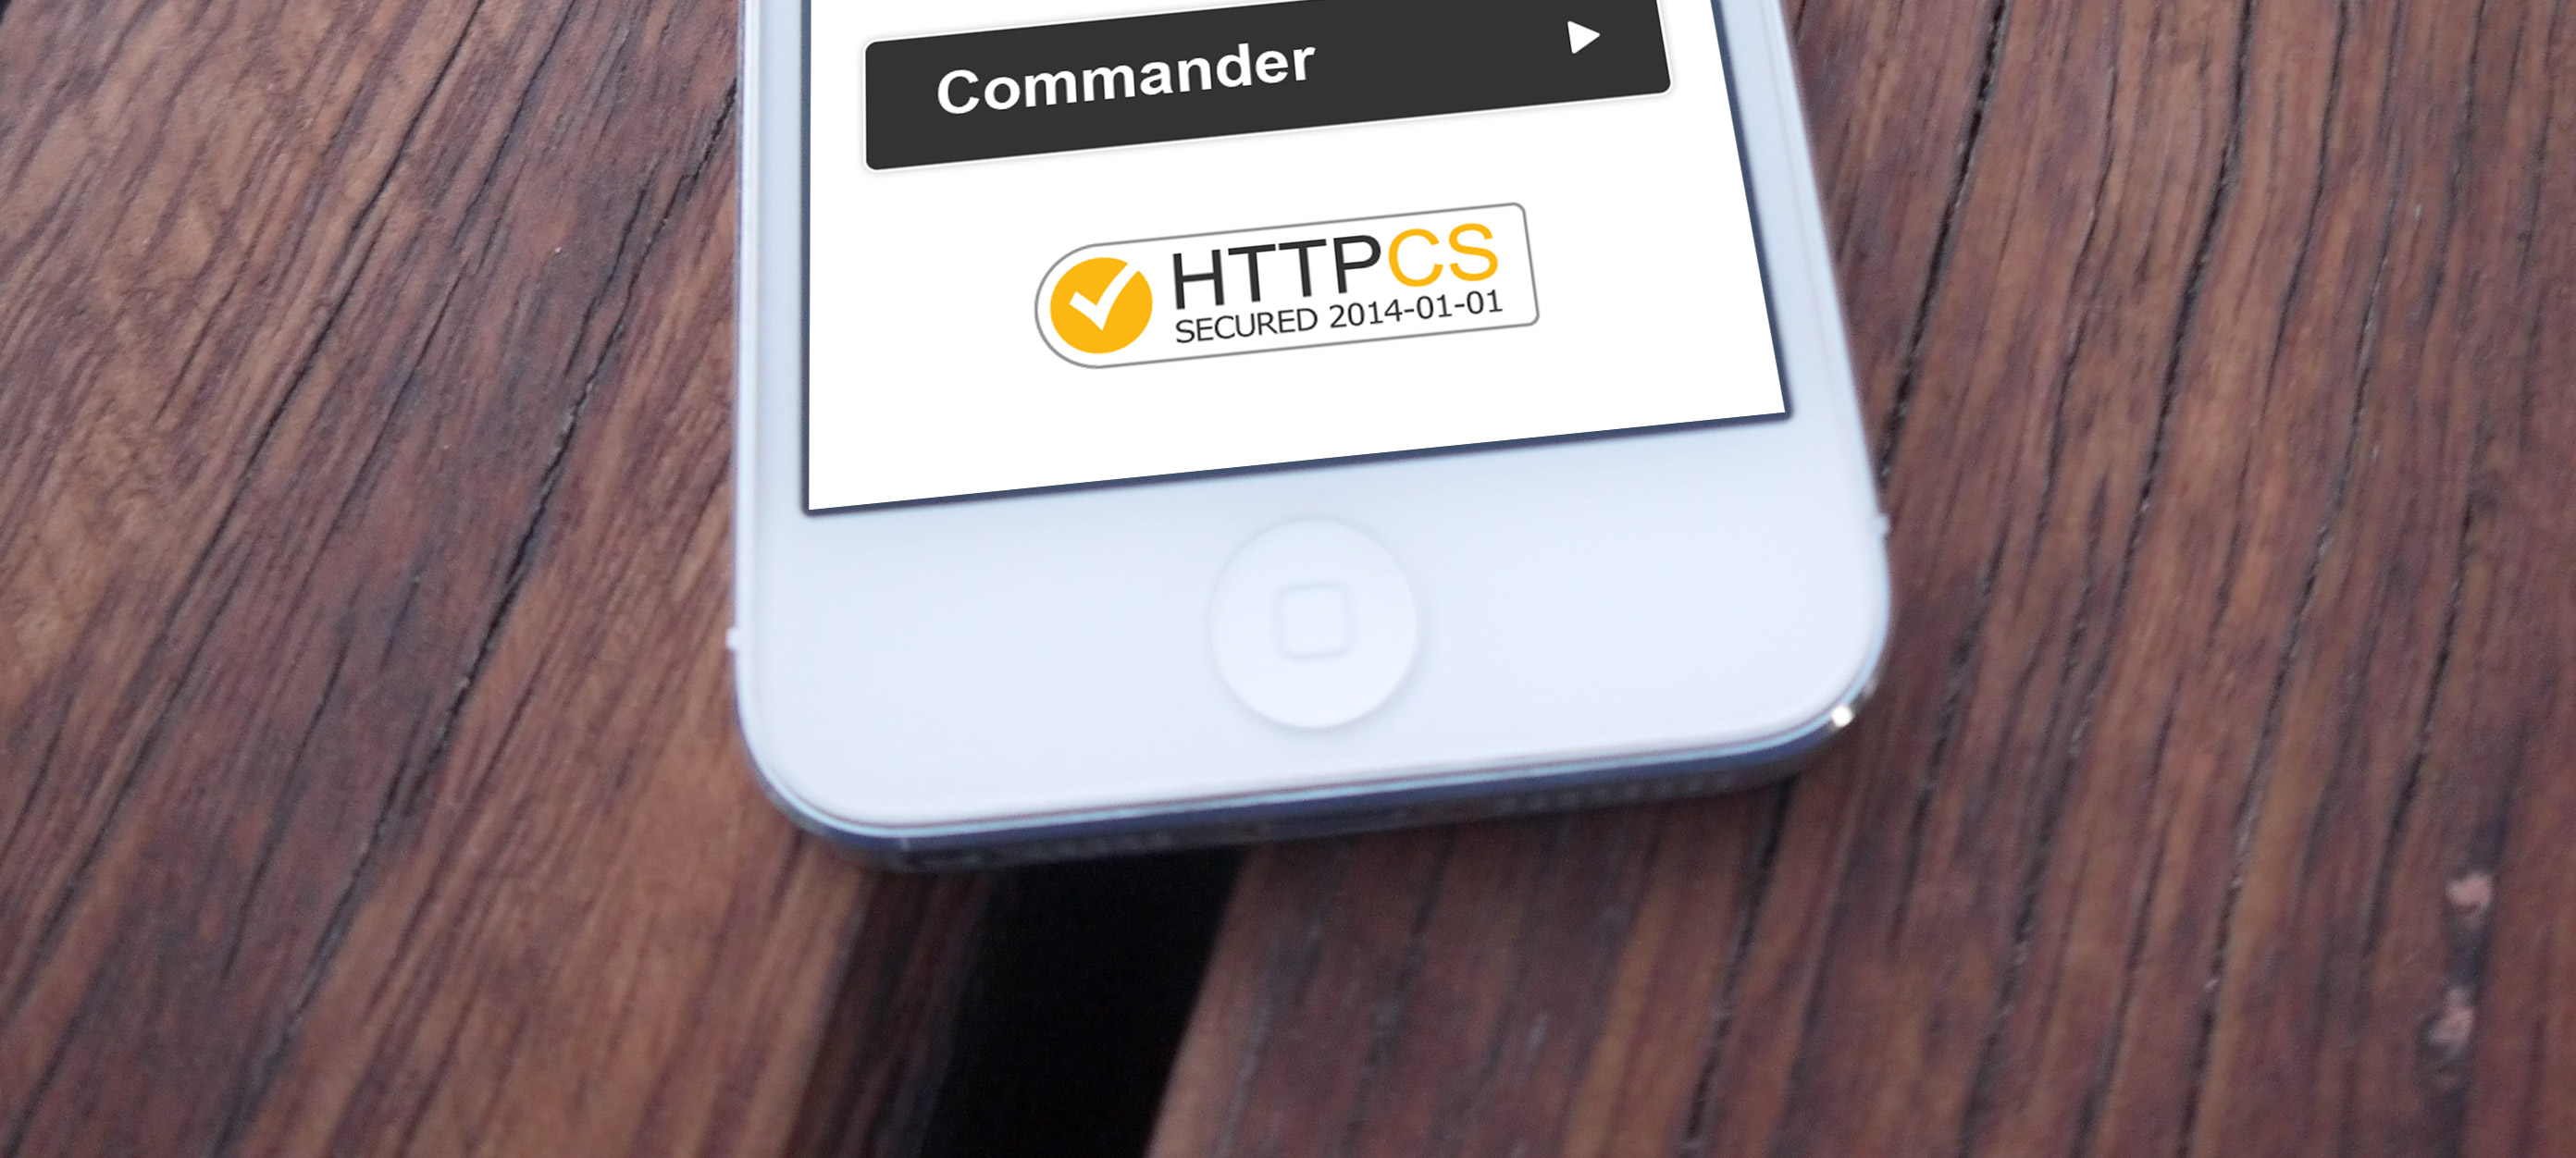 httpcs-logo-securisation-web-mobile-zoom-creation-communication-caconcept-alexis-cretin-graphiste